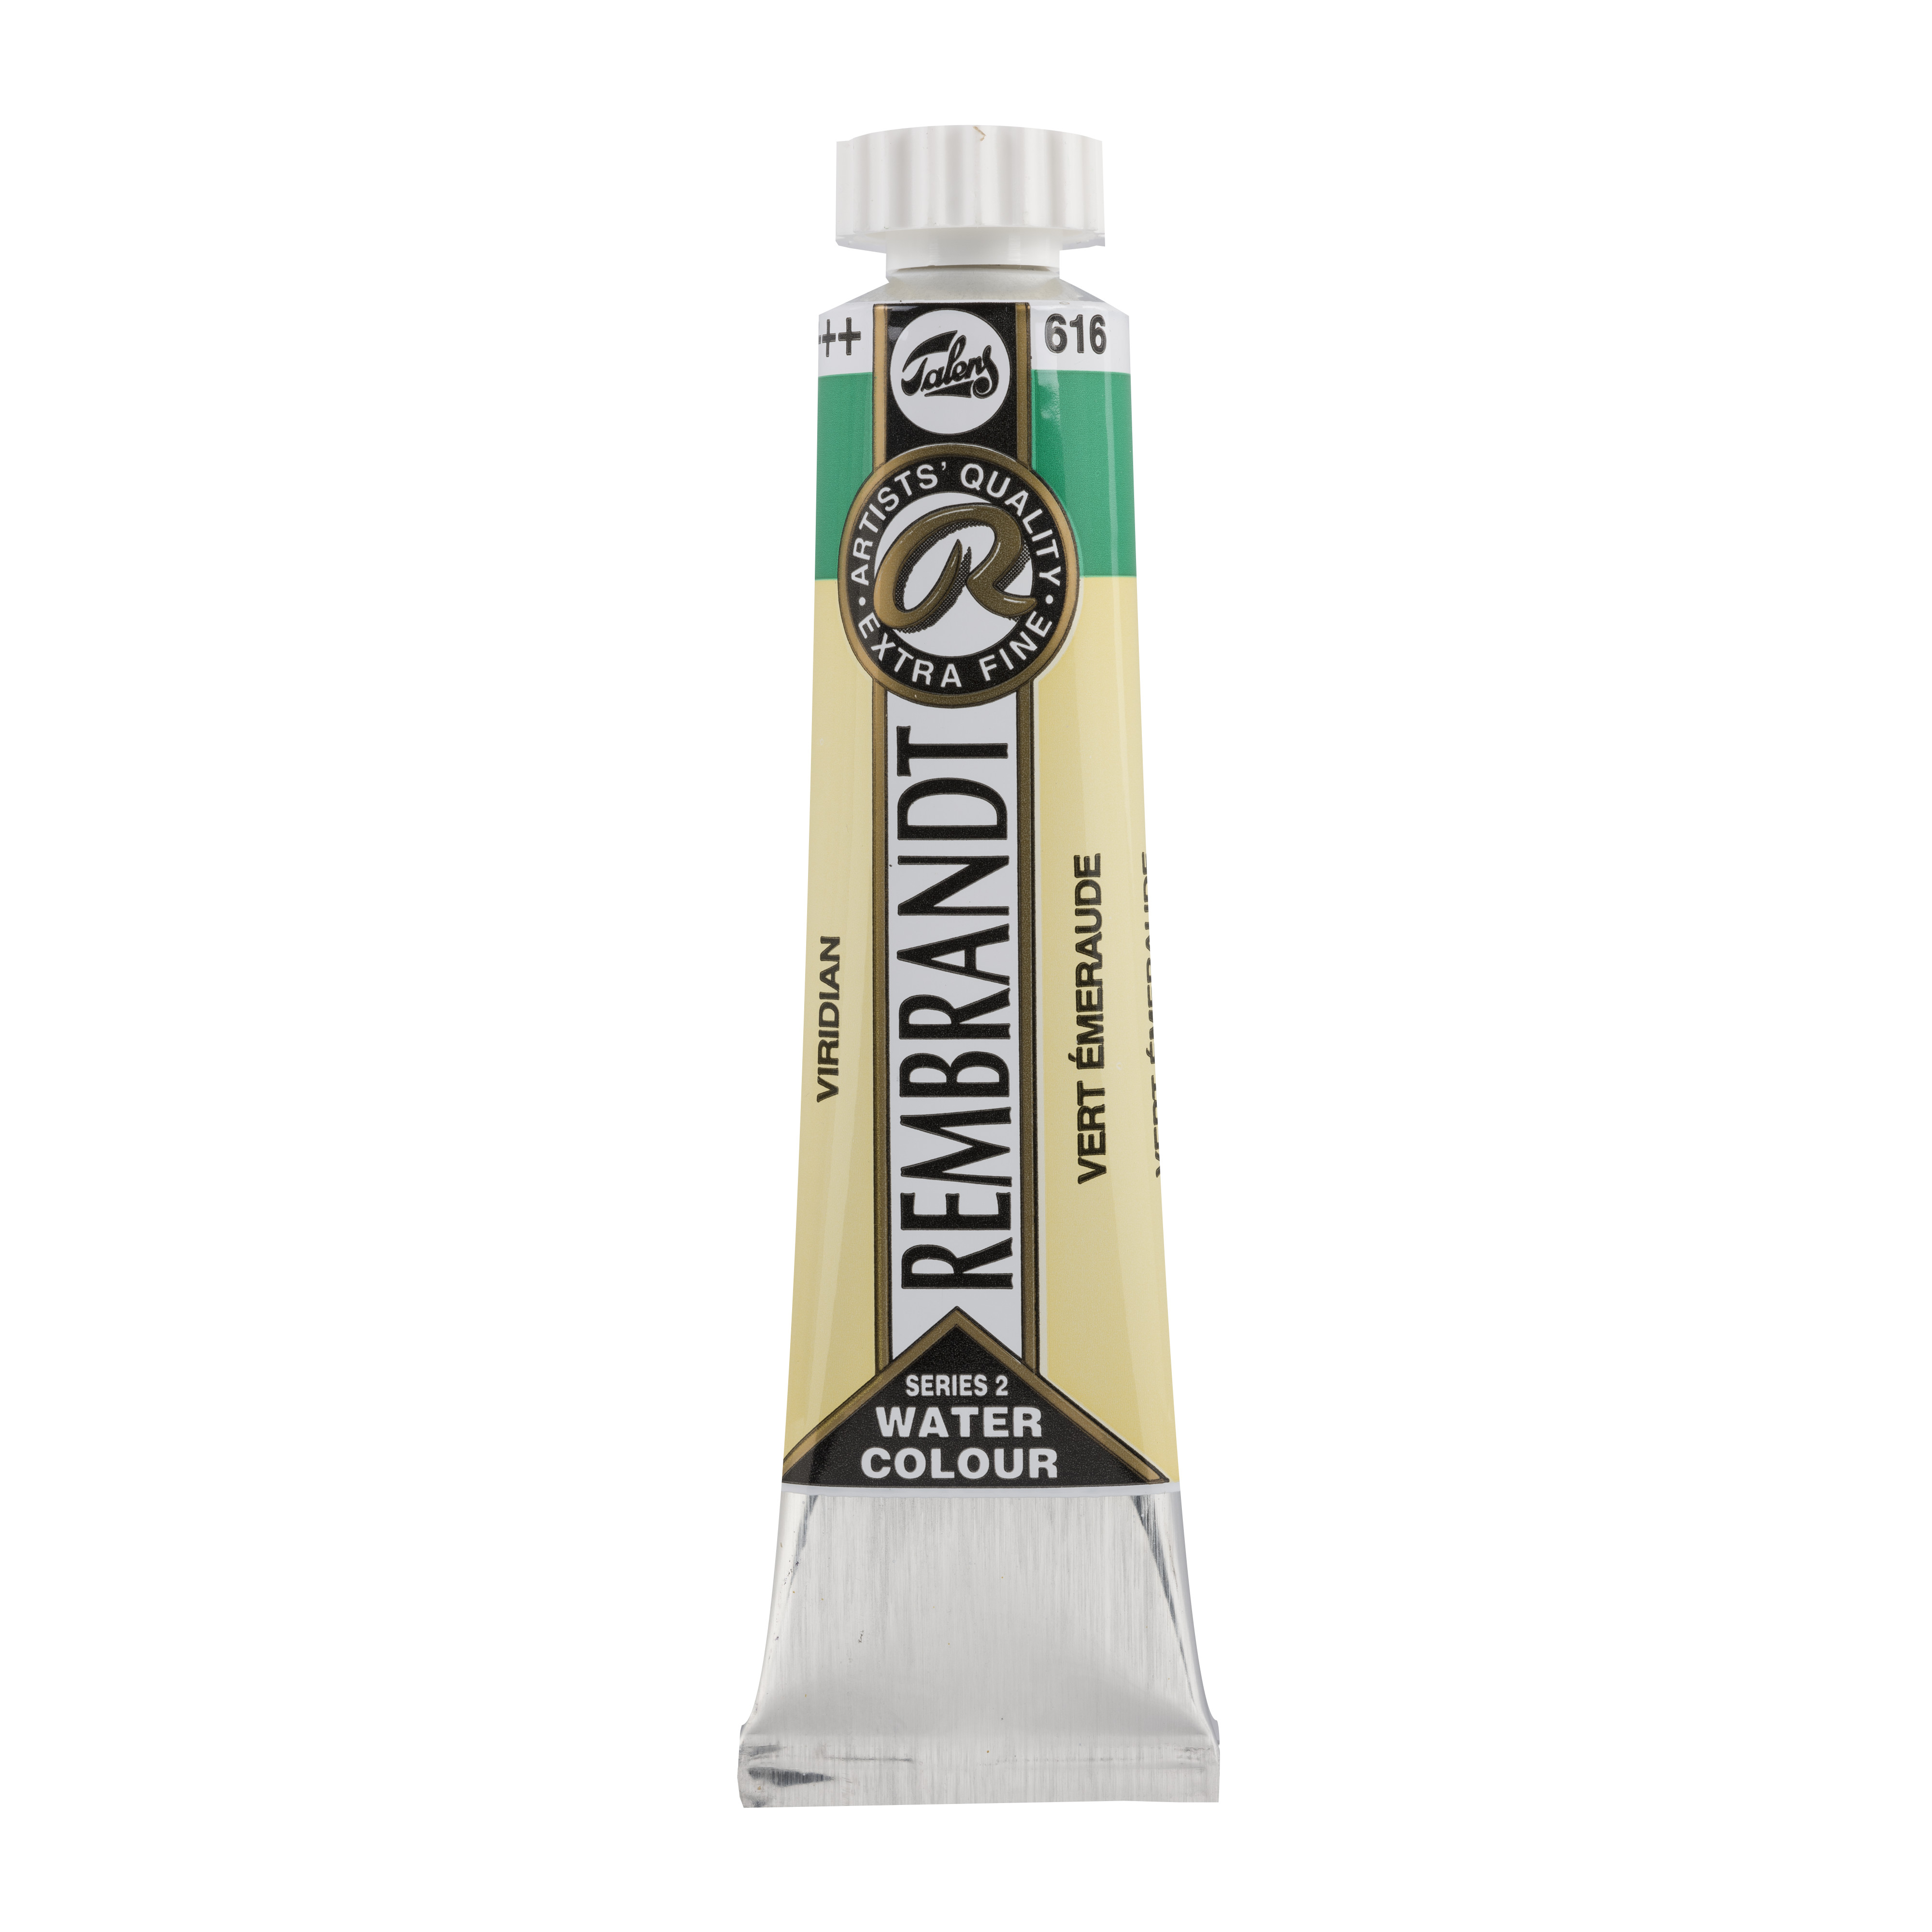 Rembrandt Professional Watercolour Paint, 20ml Tube, Viridian 616